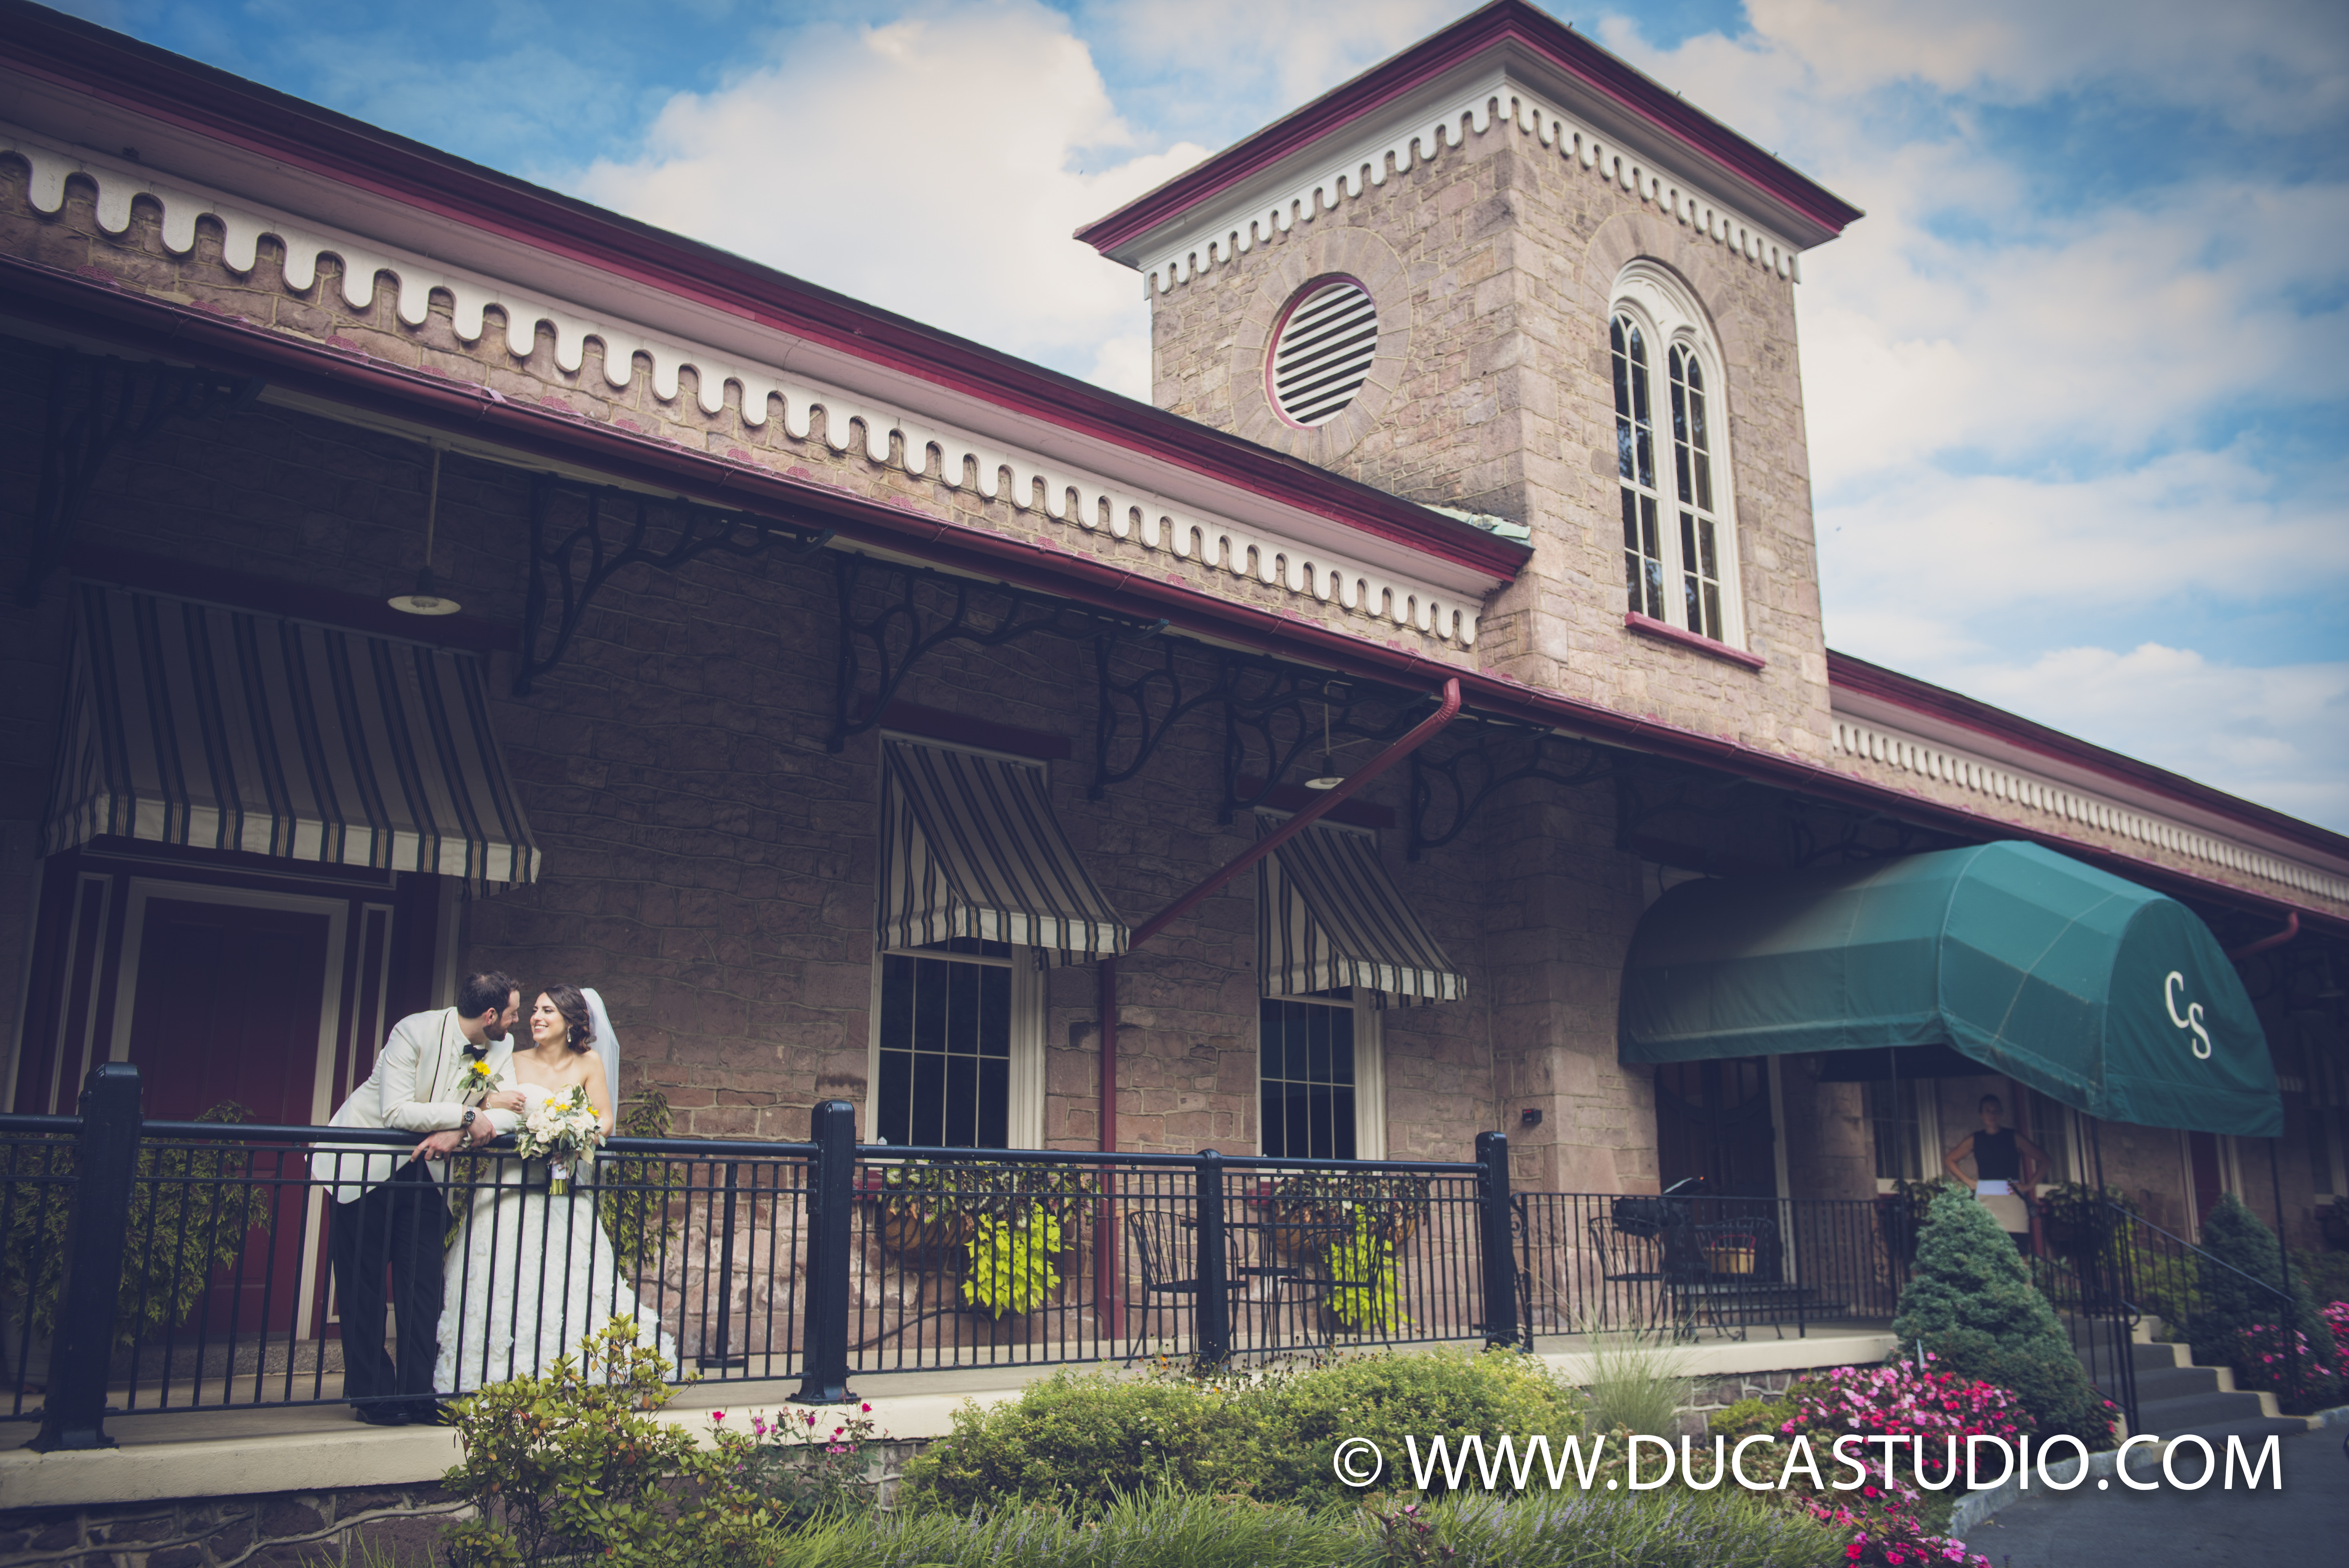 This Unique Venue Was Built In 1858 And Served As A Passenger Train Station Serviced By The Reading Railroad Until 1972